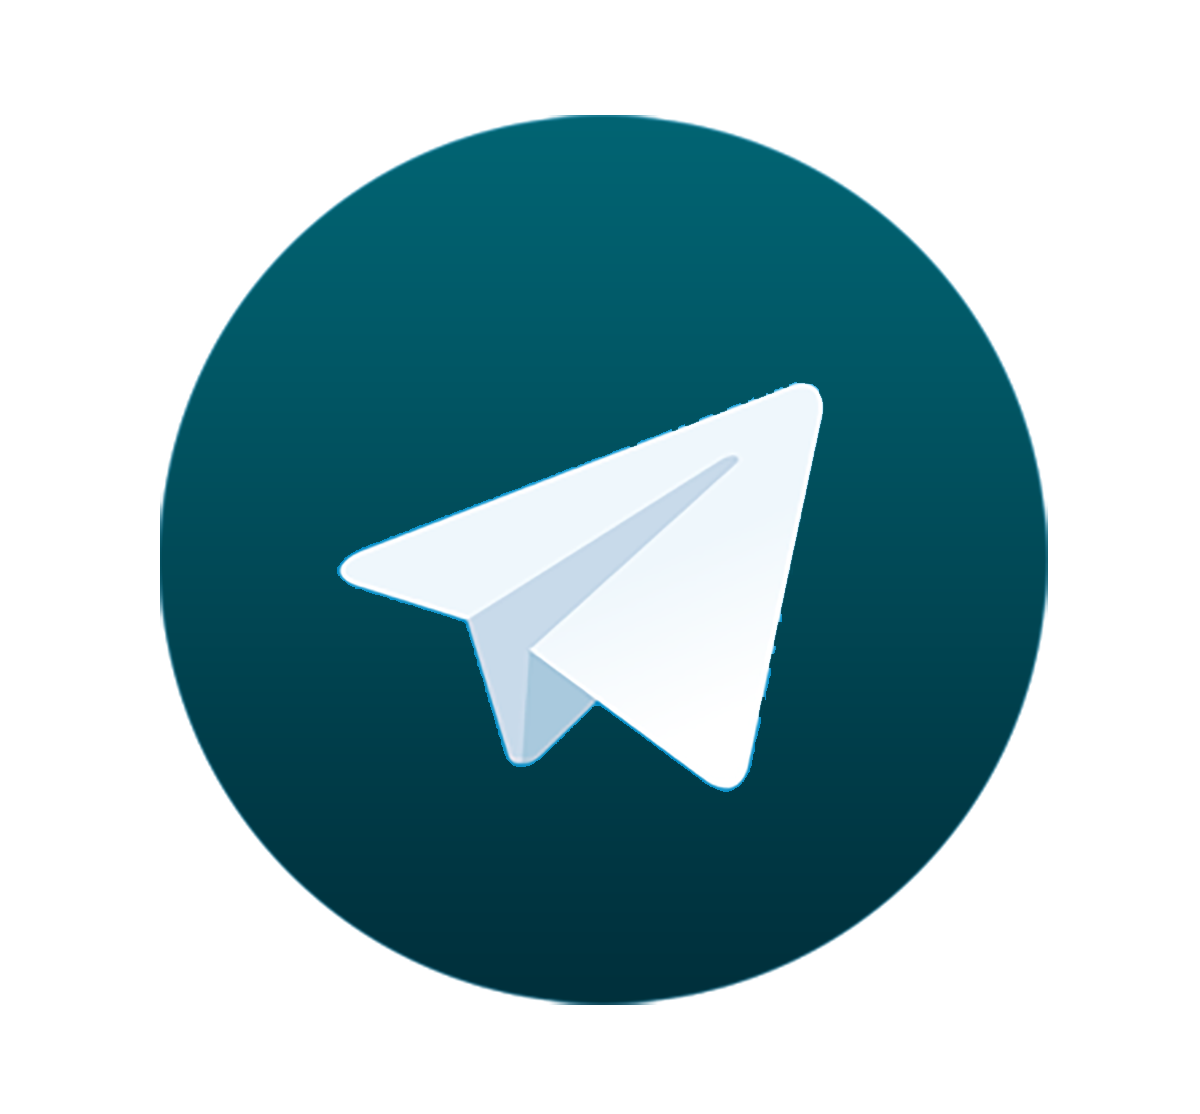 drealms_telegram_icon.png